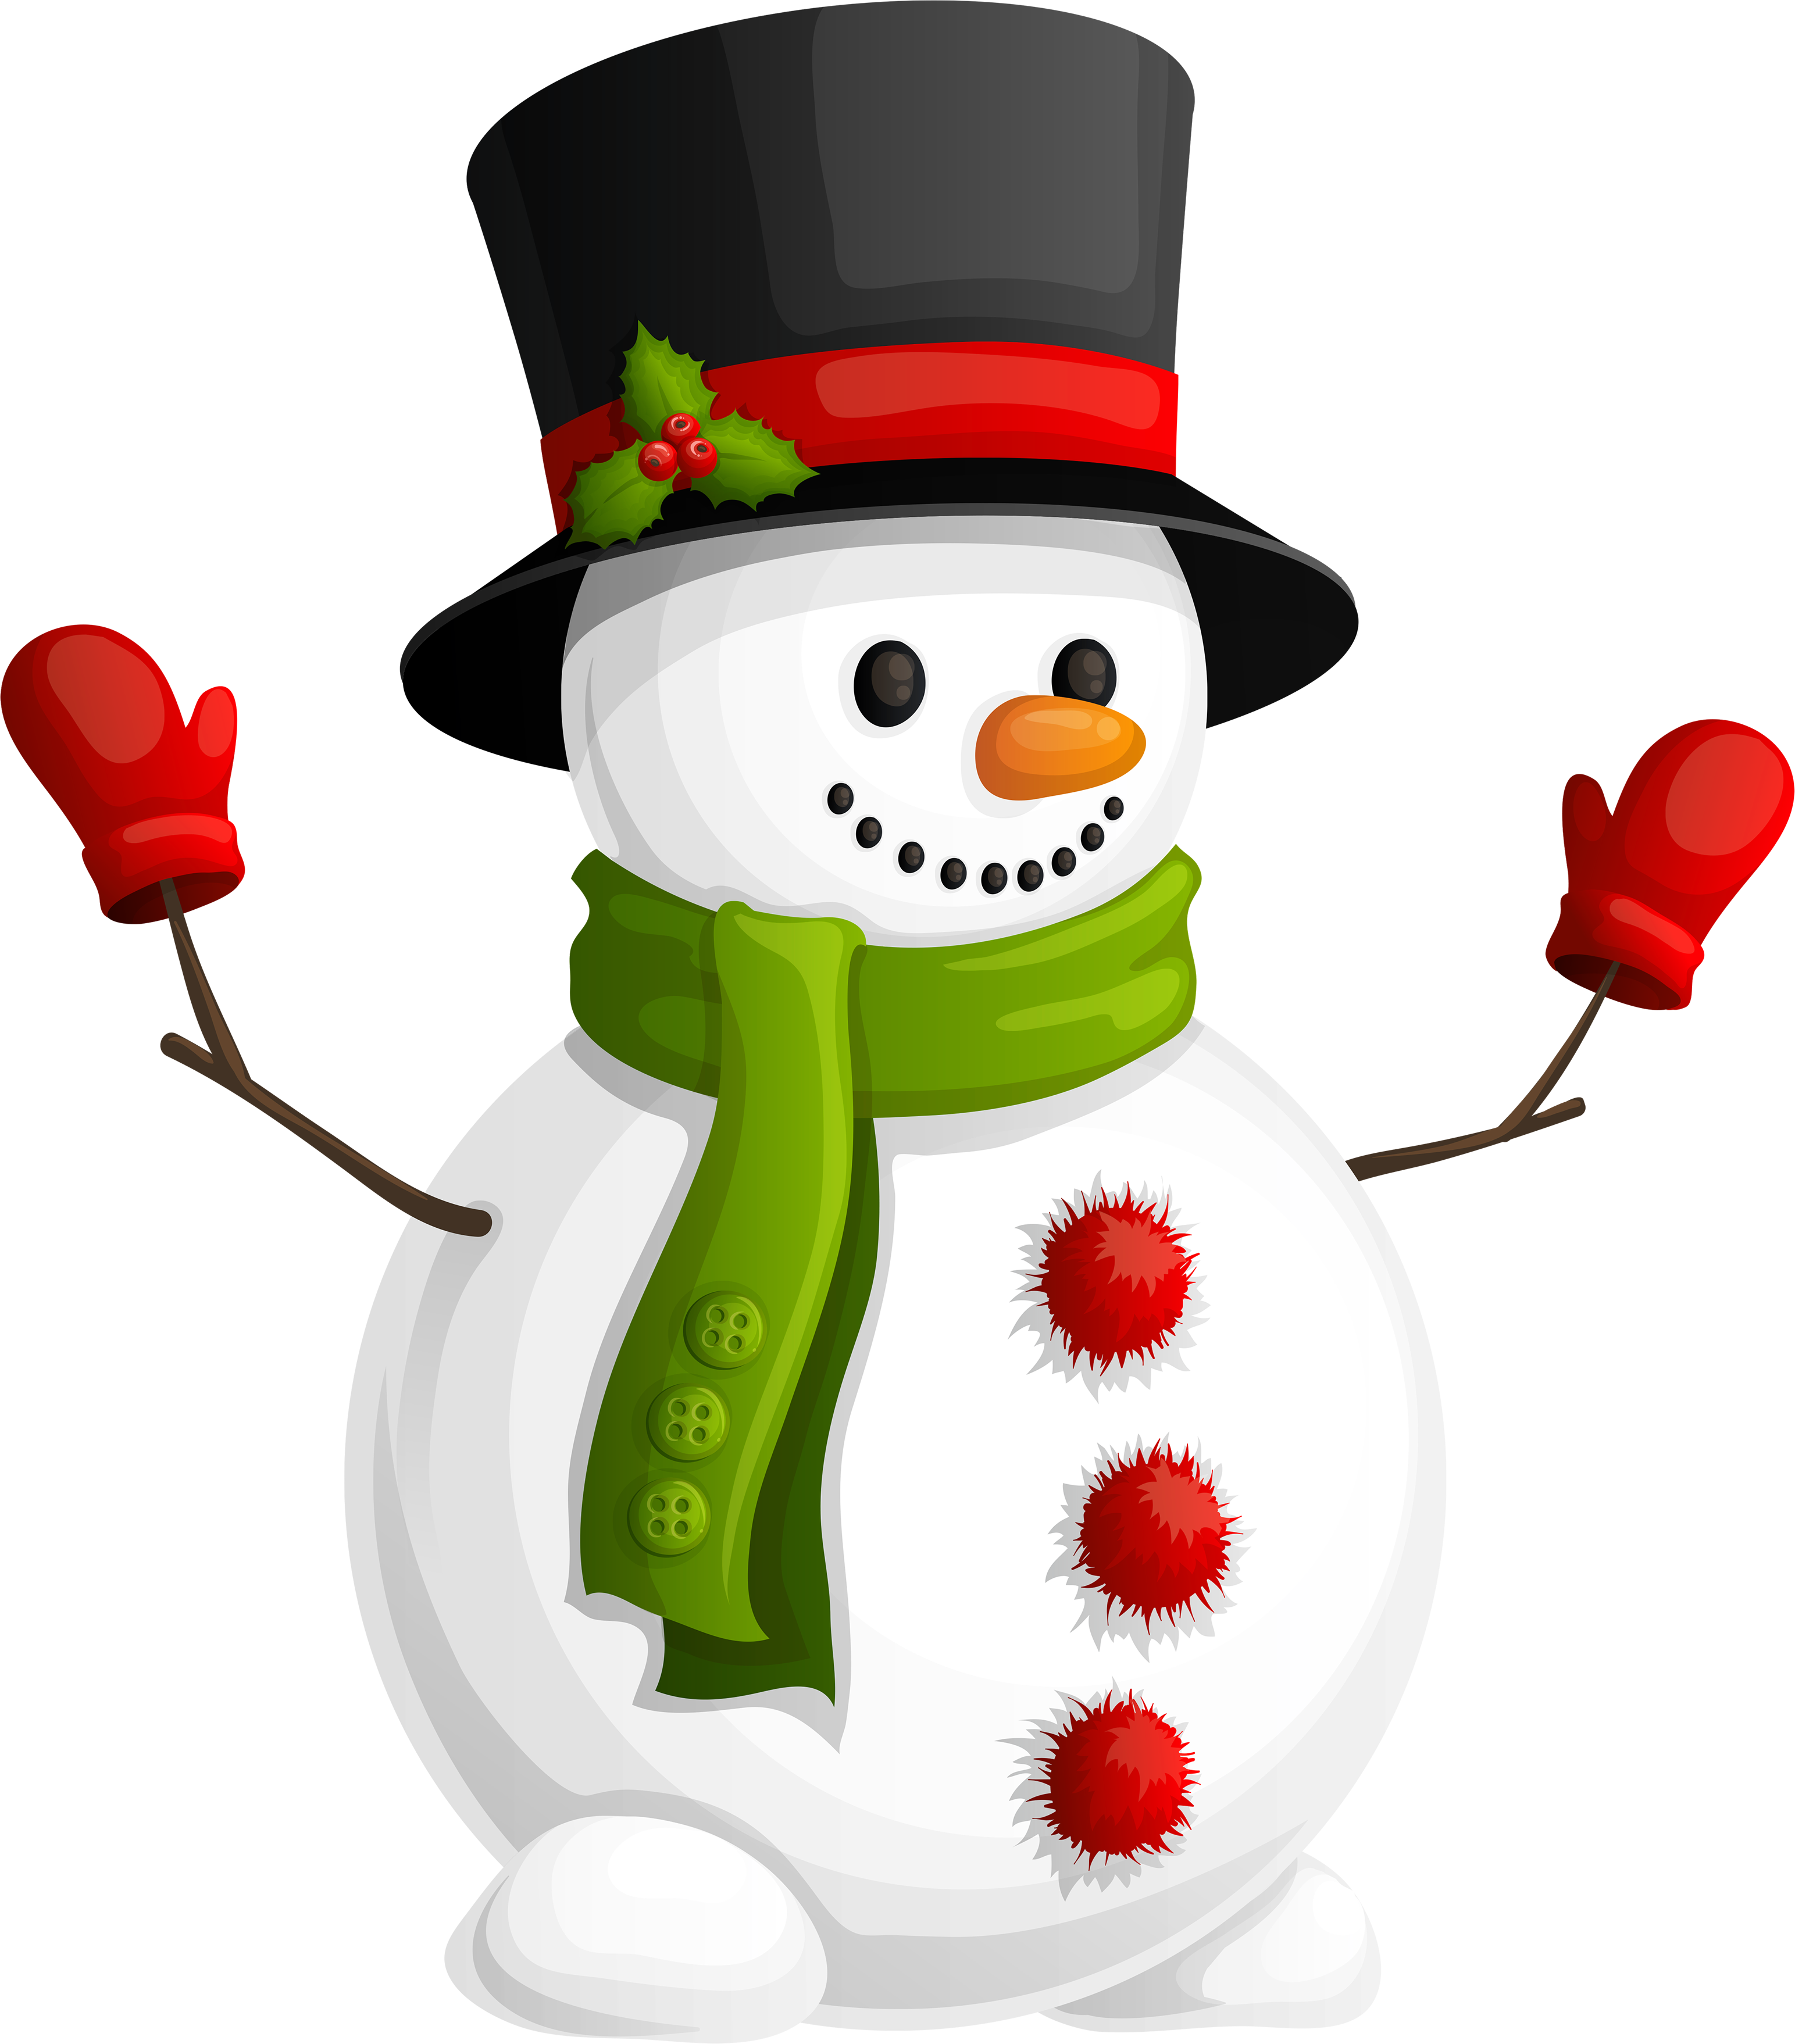 Download Snowman Free Clipart HQ HQ PNG Image.